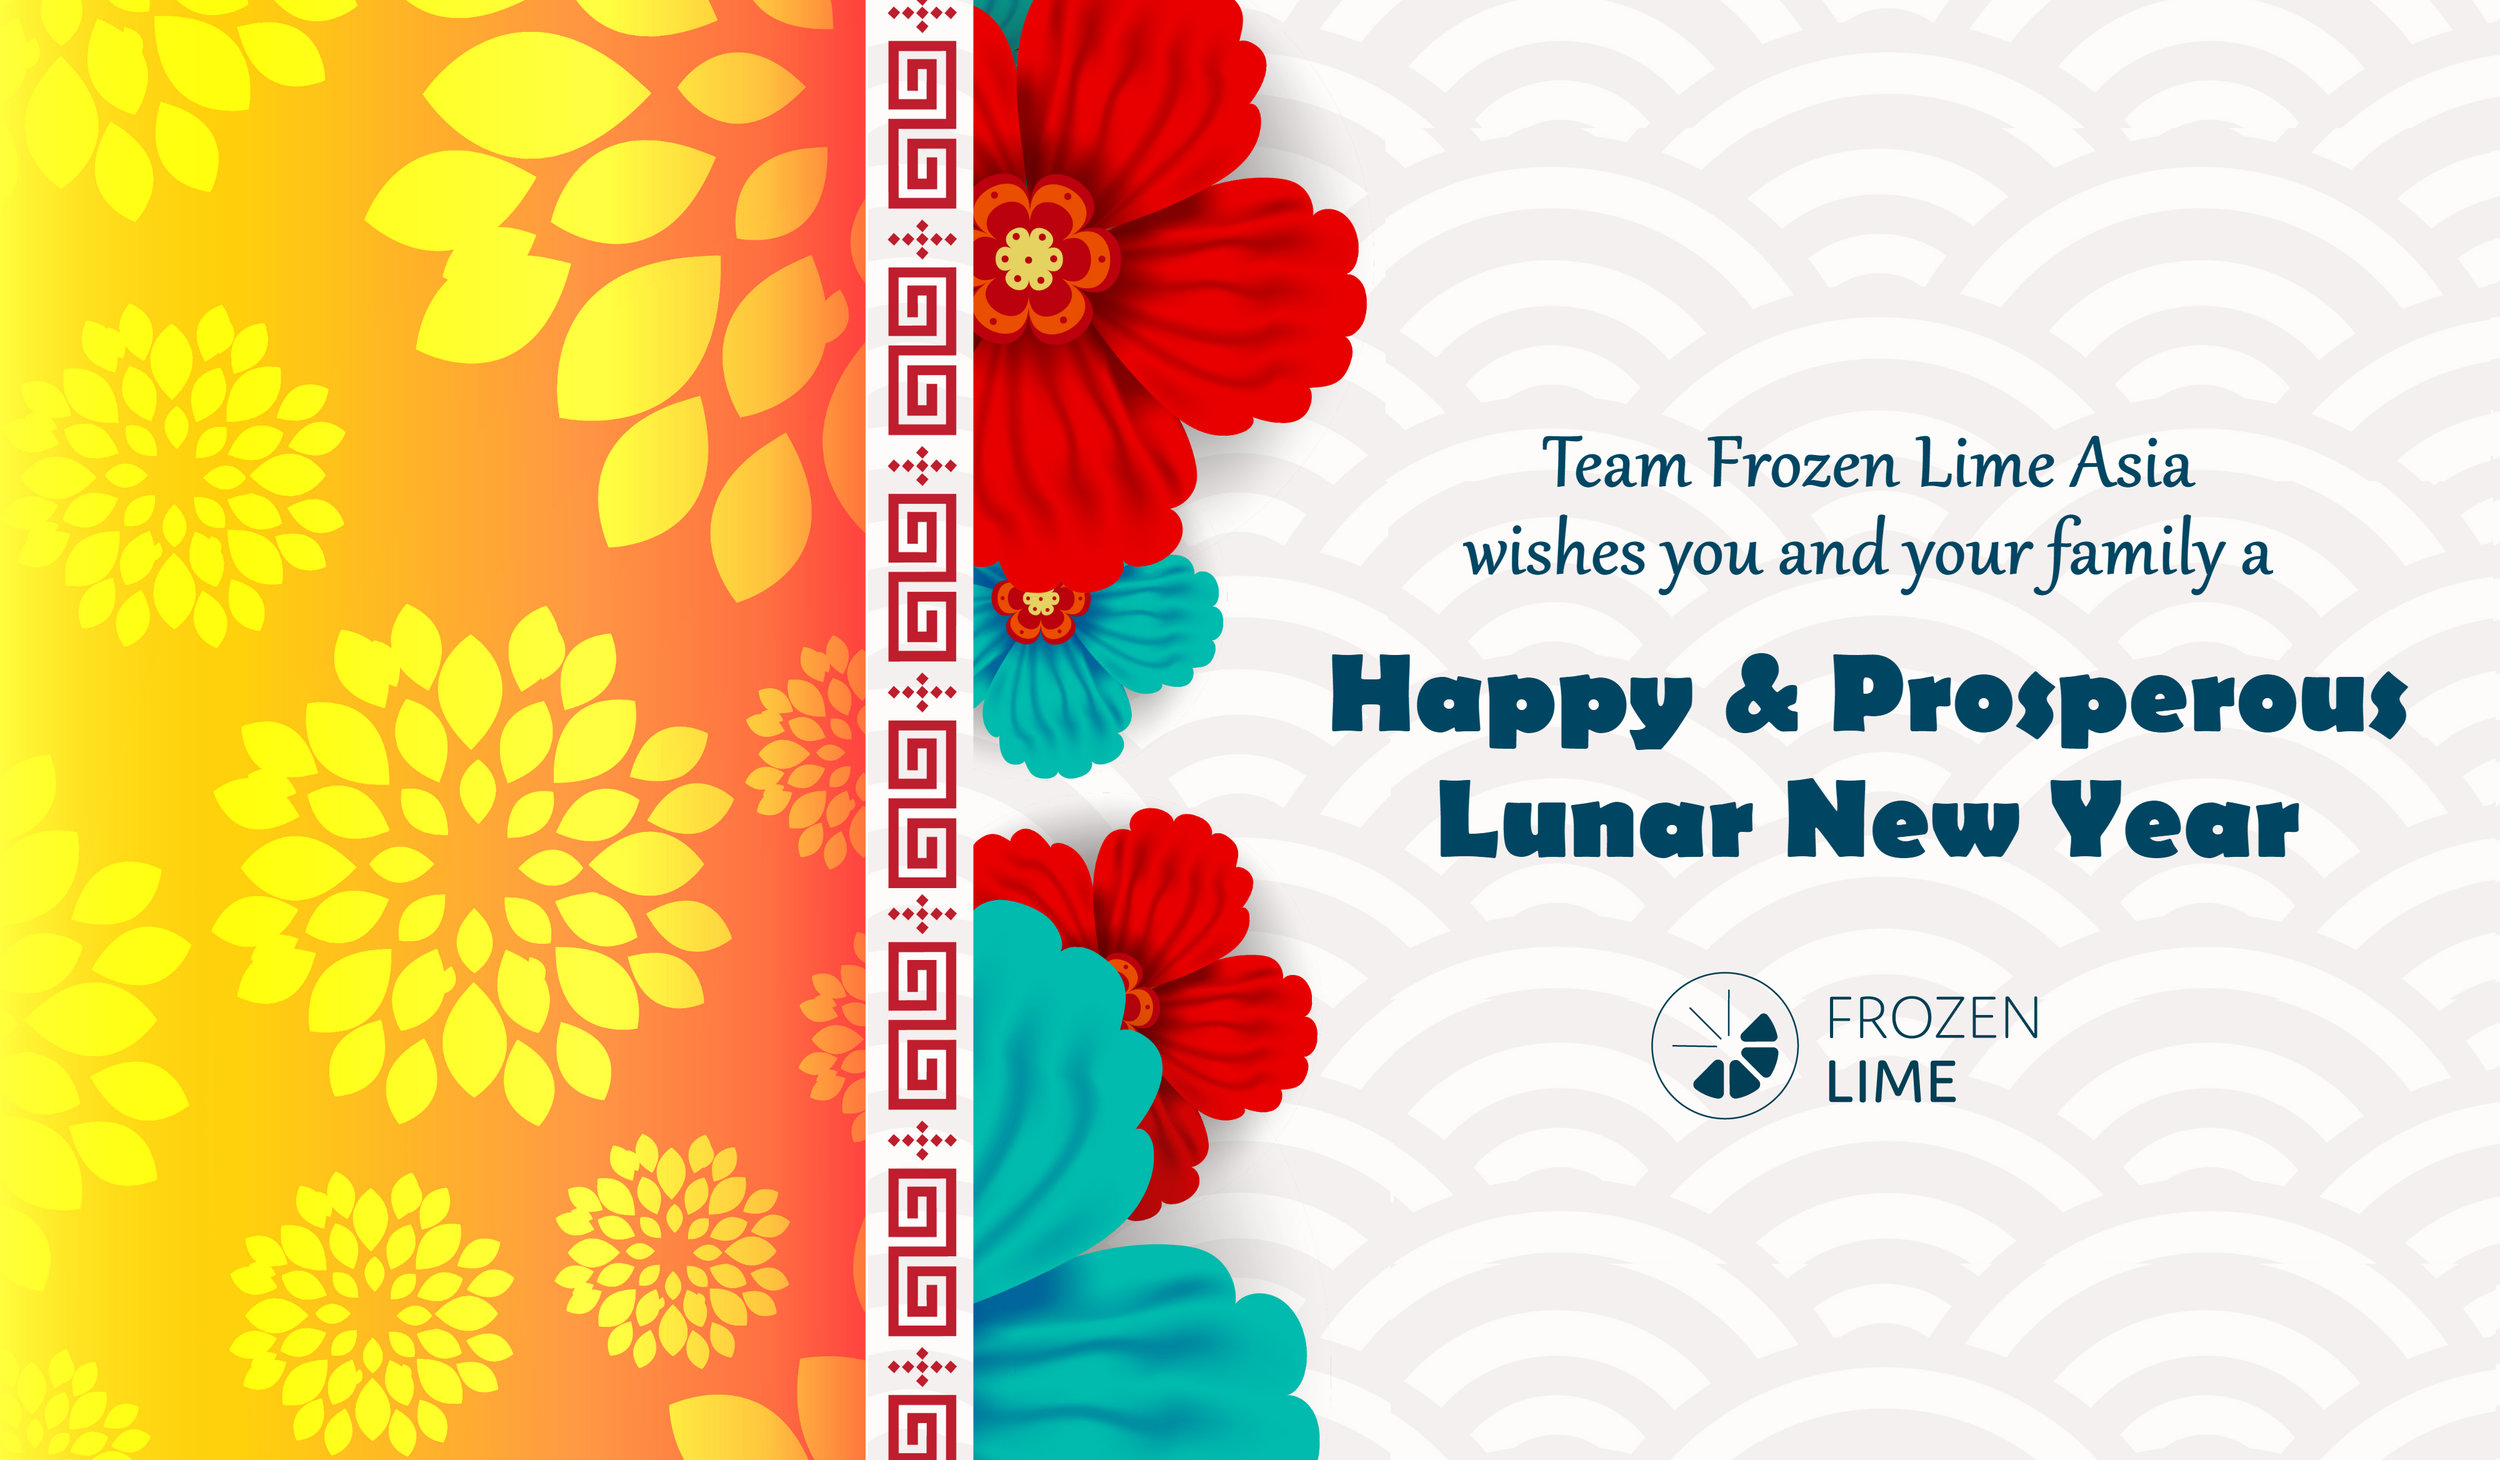 Happy & Prosperous Lunar New Year 2019.jpg